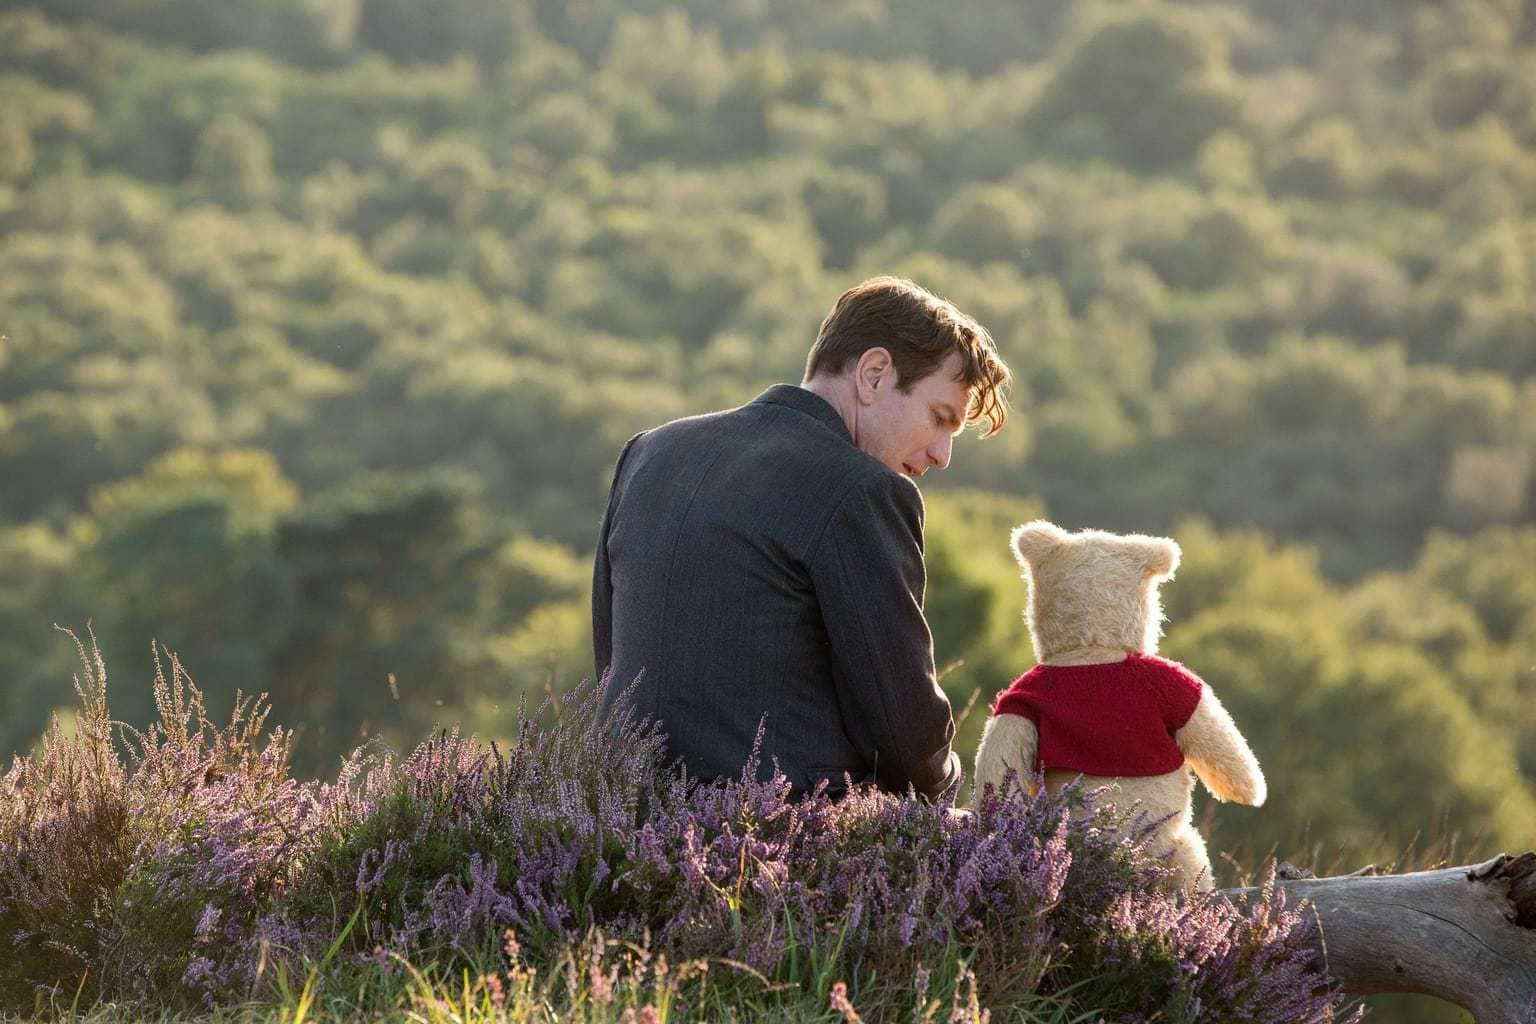 Disney's Christopher Robin: A Beautiful Family Film for Both Young and Old #ChristopherRobinEvent